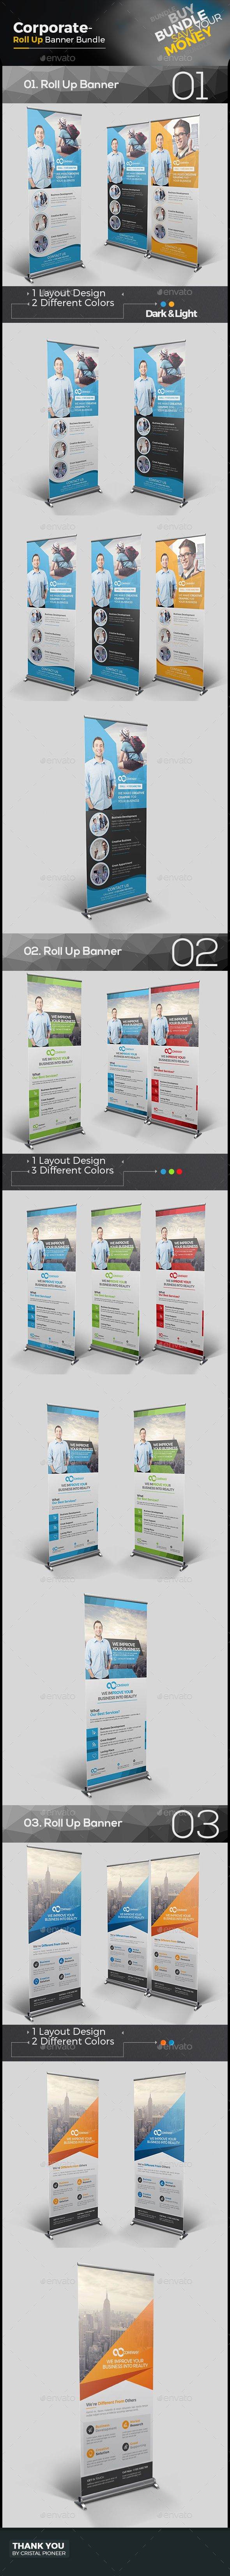 Corporate Roll Up Banner Bundle 3 in 1 | Banners, Banner template ...